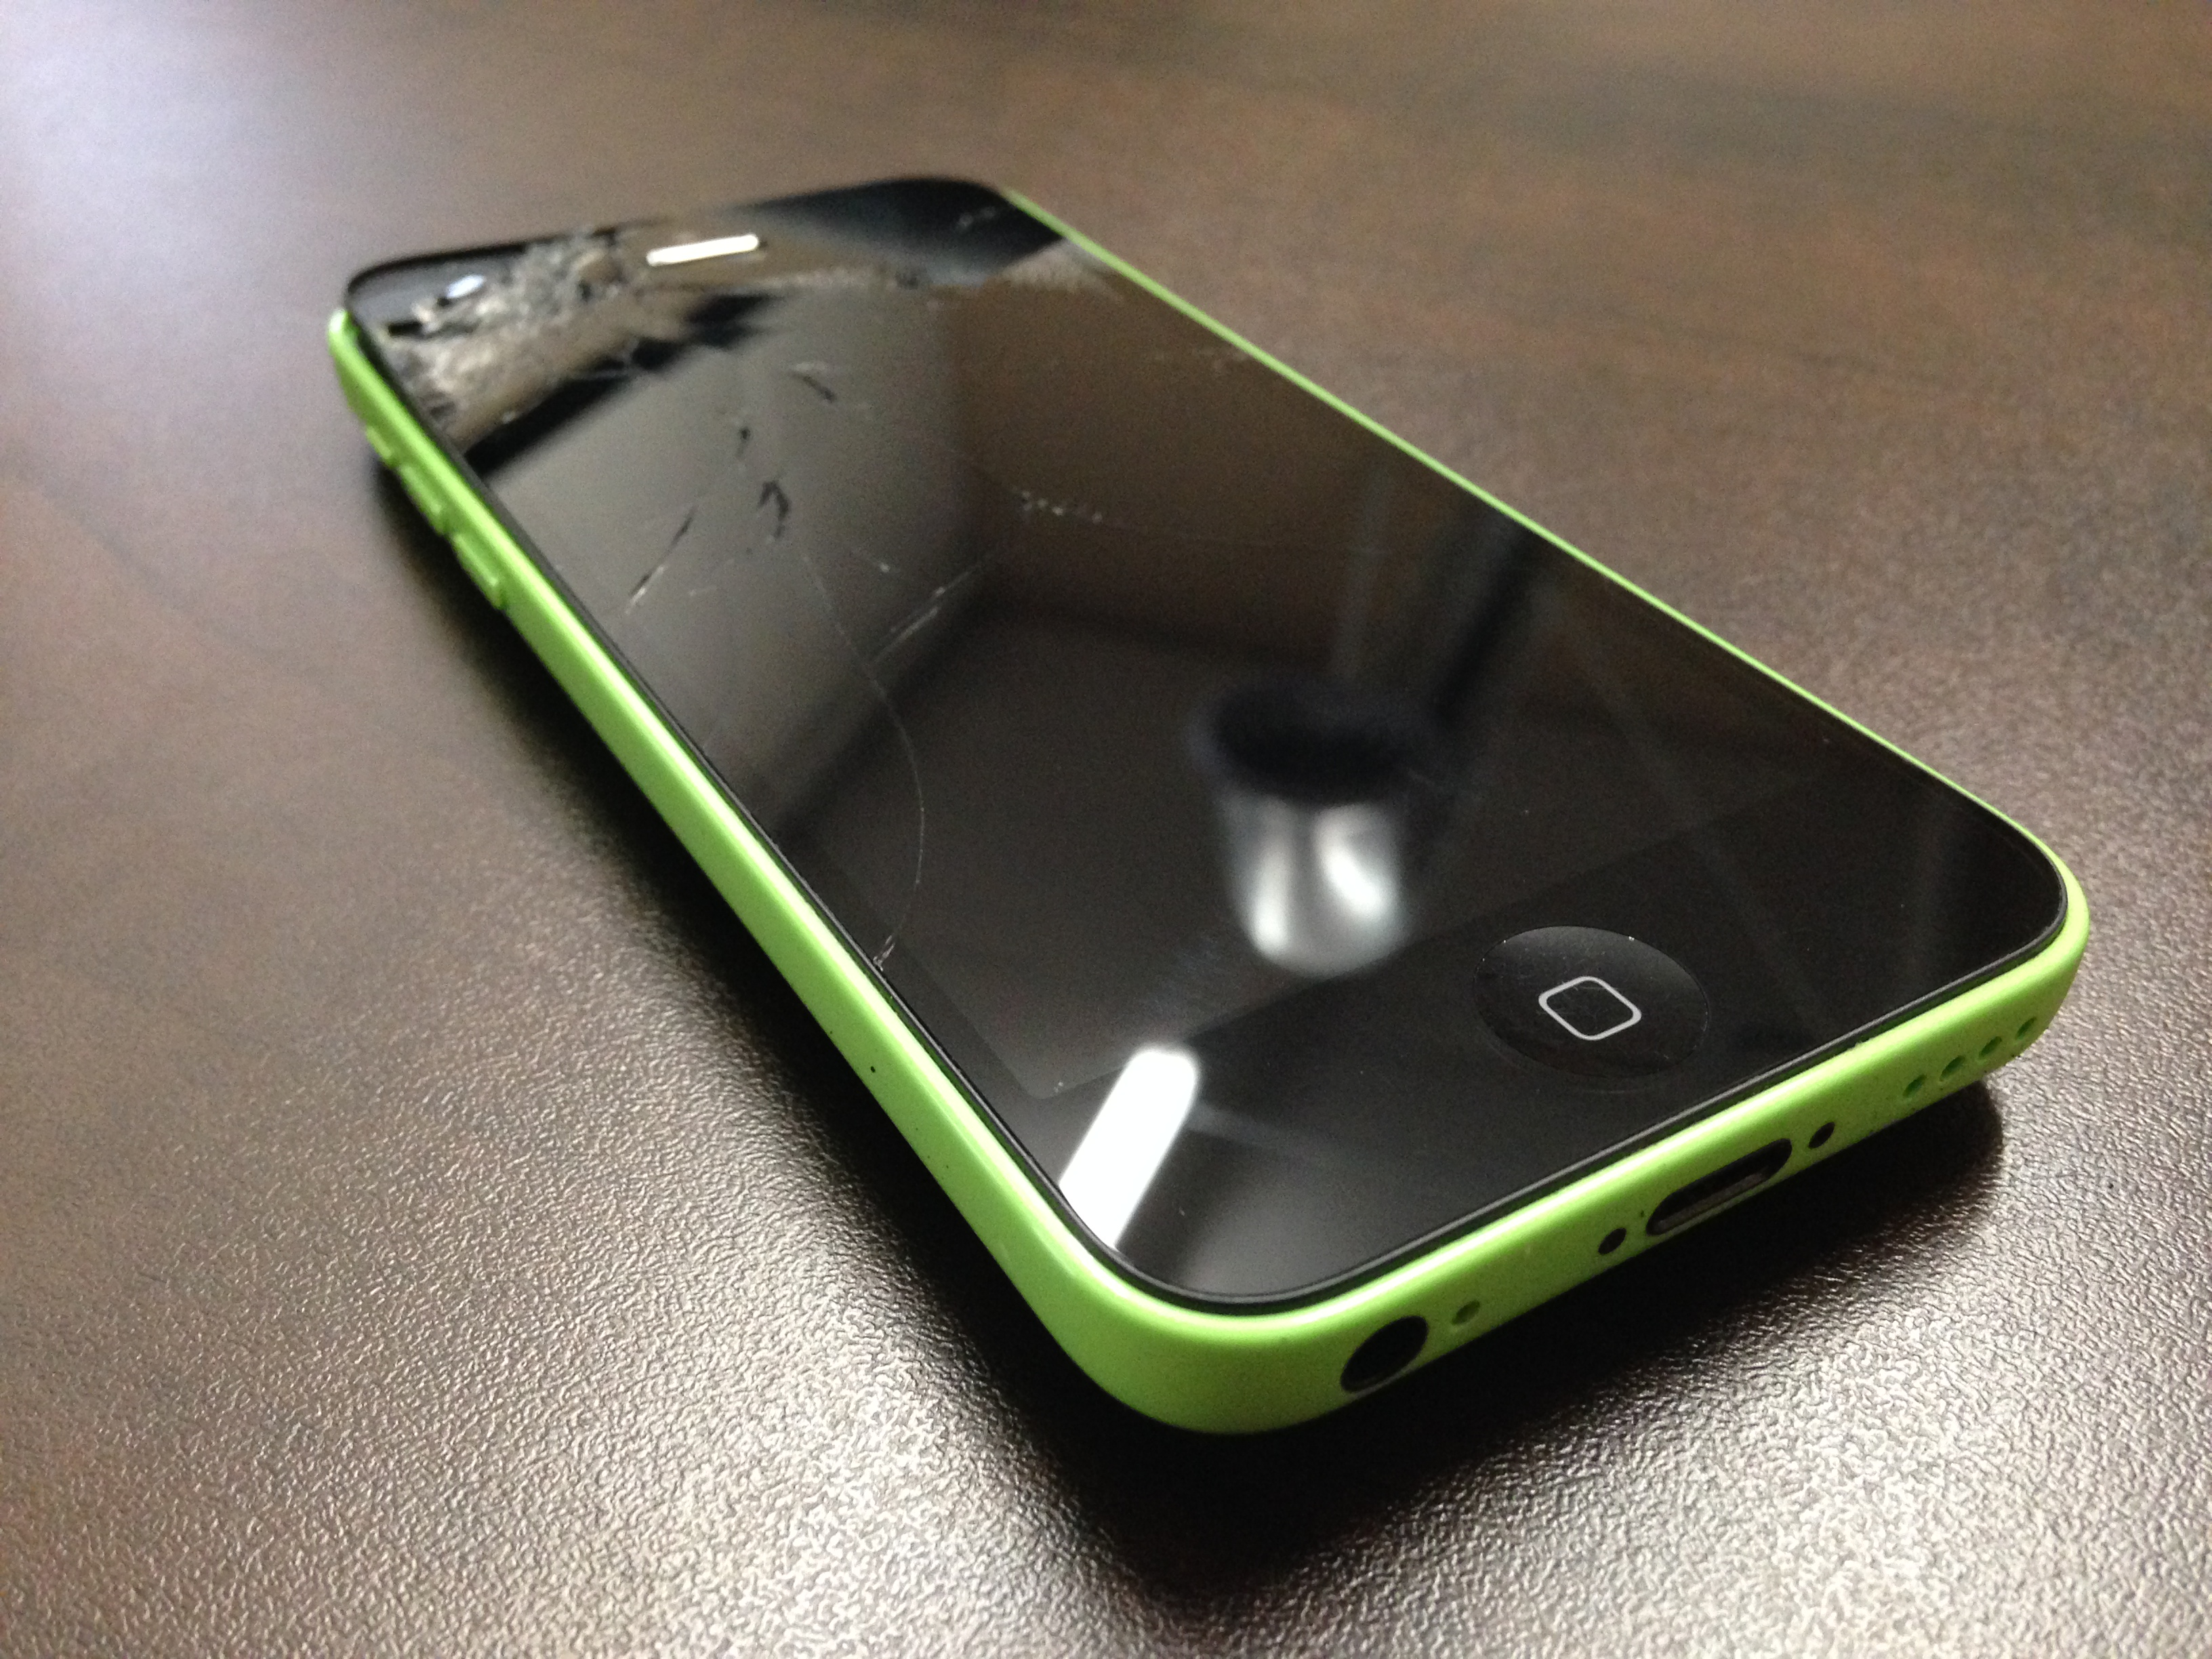 iphone 5c cracked screen mission repair broken iphone 5c screen we repair 1794